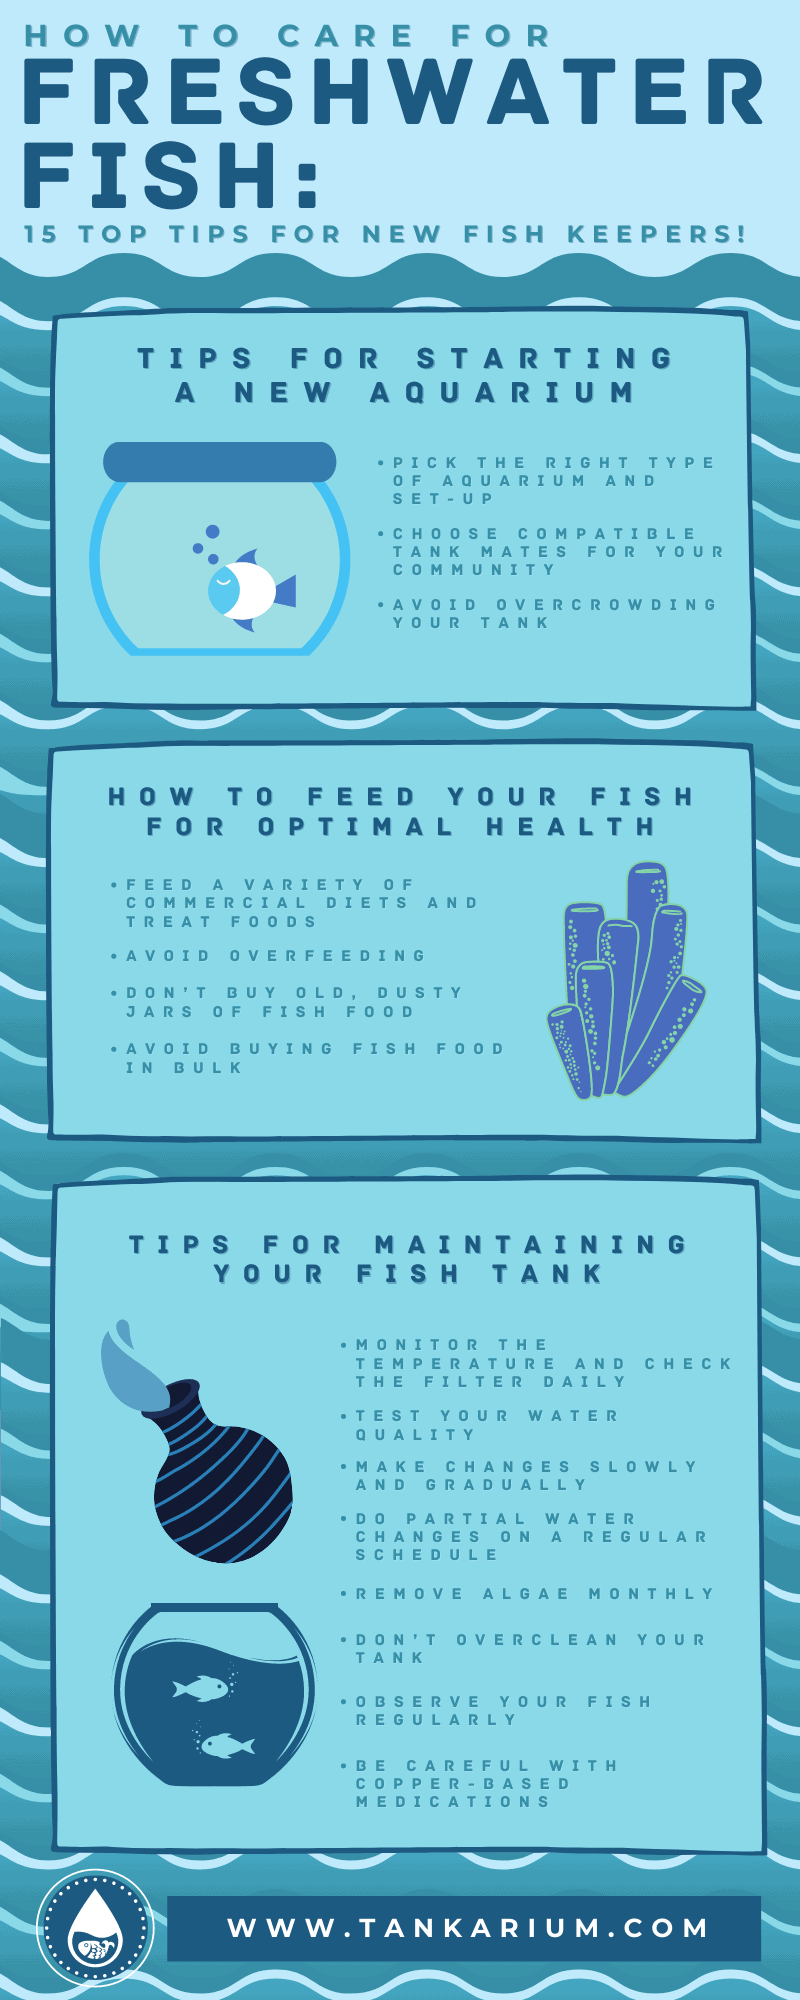 How to Care for Freshwater Fish_ 15 Top Tips for New Fish Keepers!- infographics